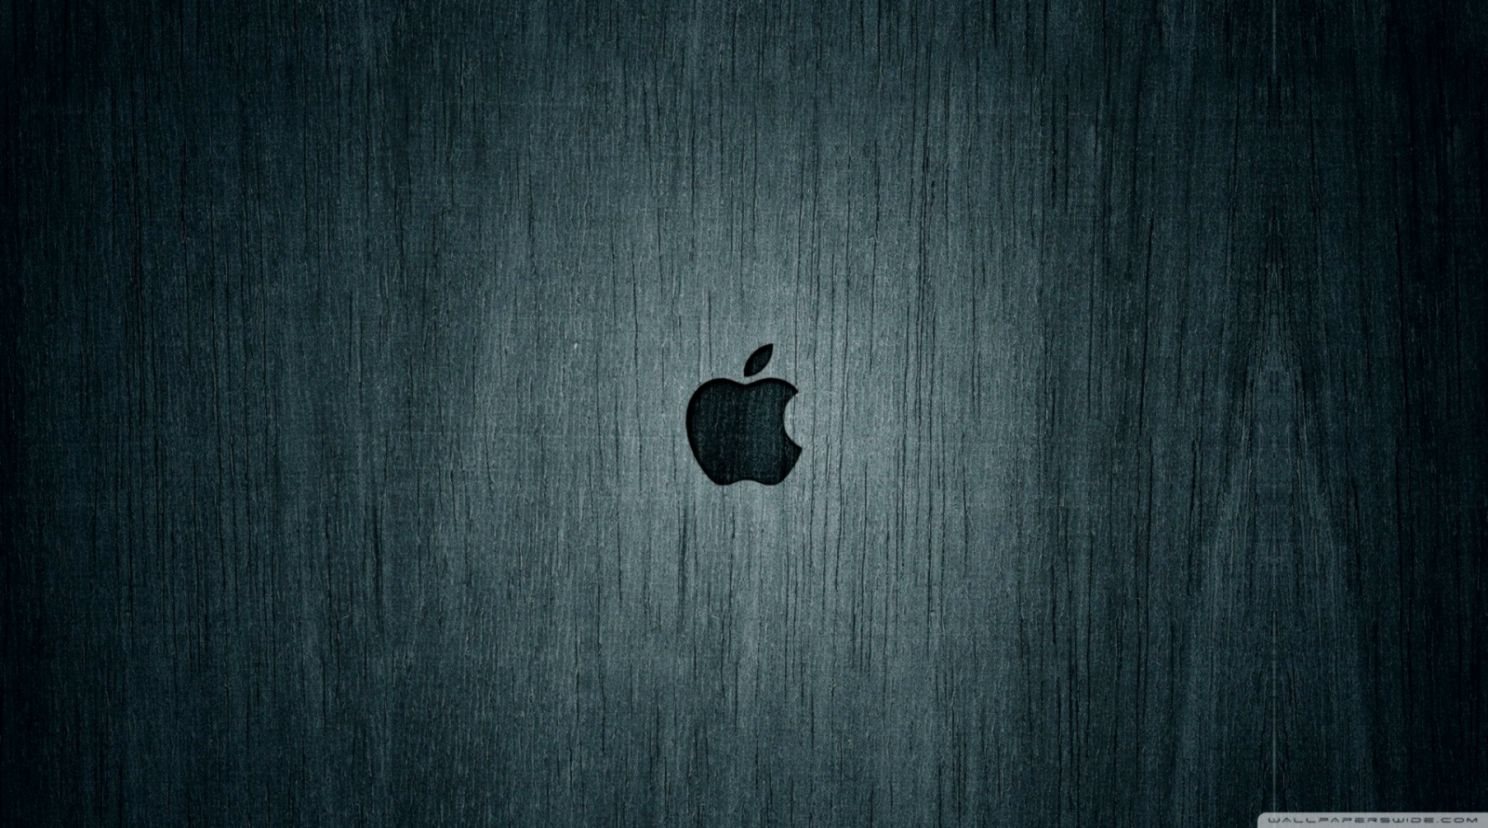 Desktop Wallpaper Awesome Apple Mac Abstract d Wallpapers Hd The